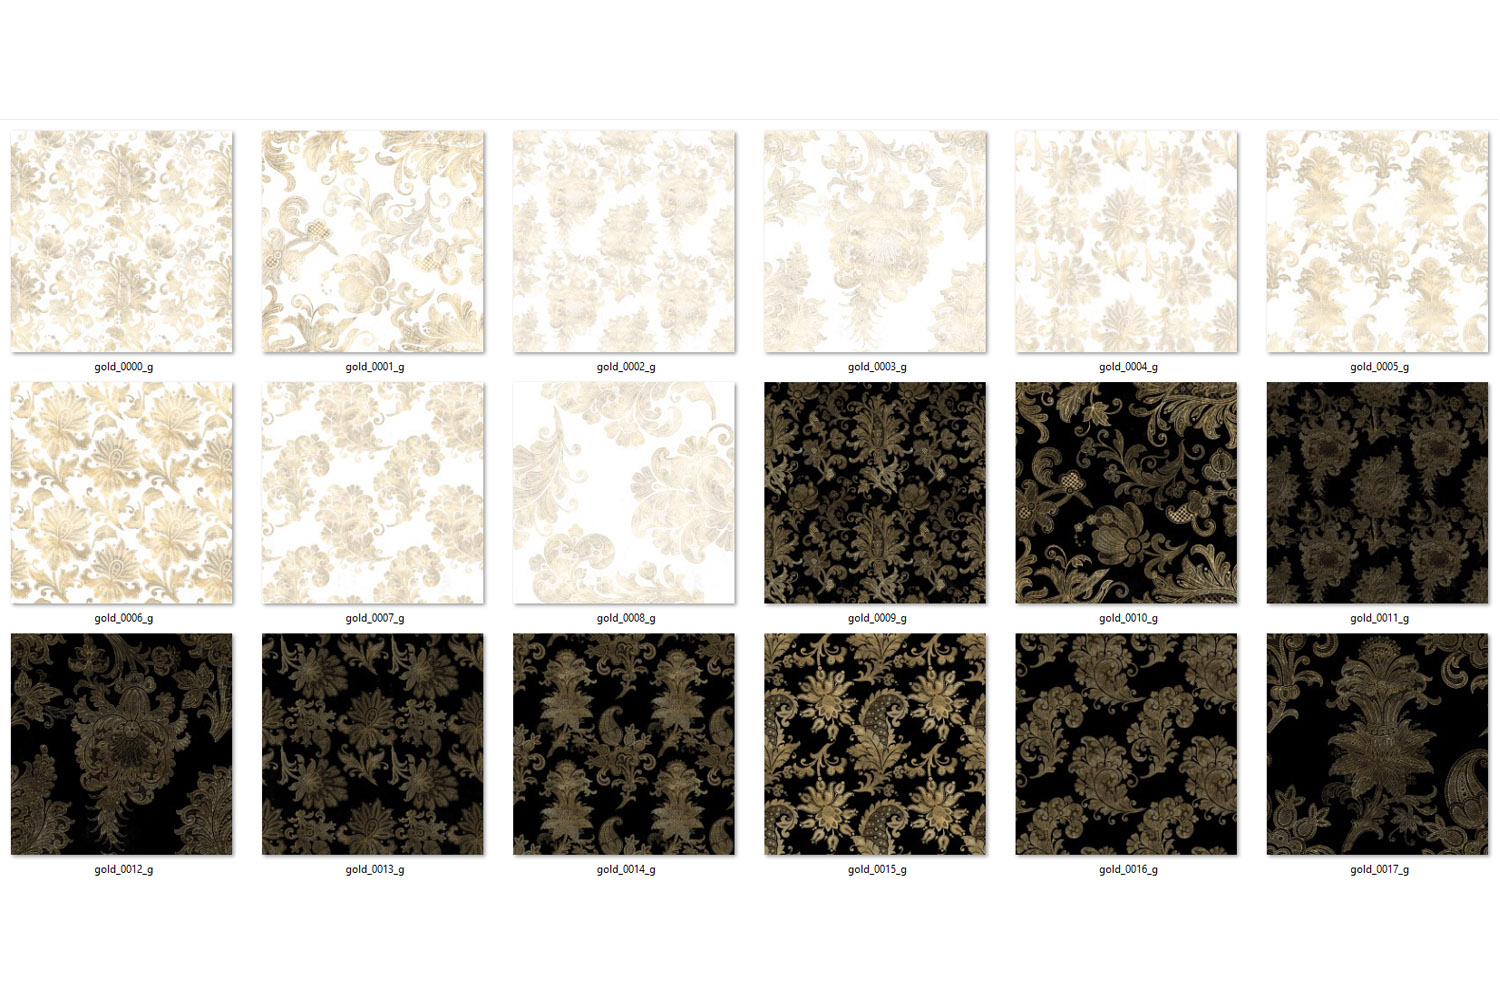 Black White and Gold Floral Digital Paper example image 4